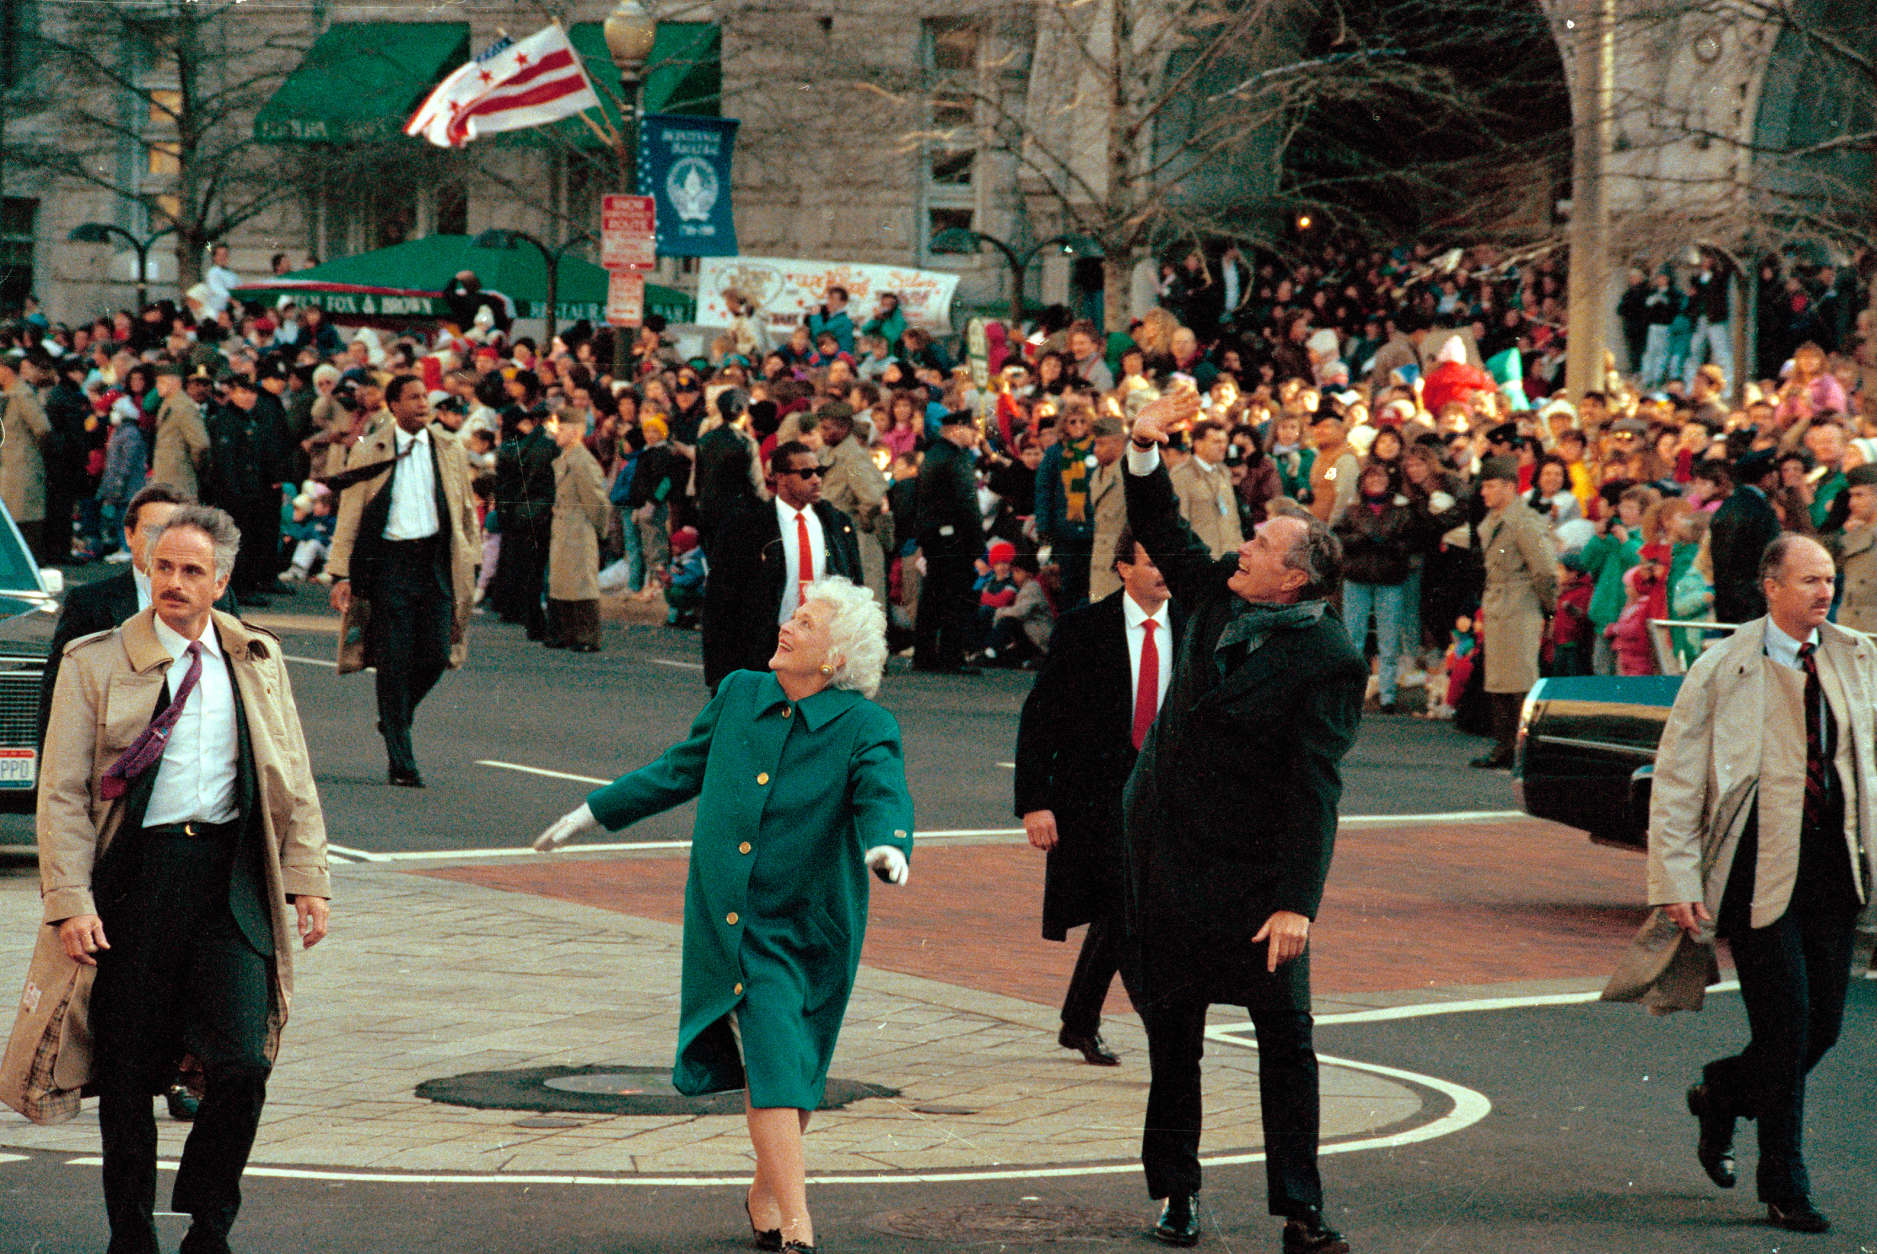 President George Bush, right, and his wife, first lady Barbara Bush, acknowledge the crowd on Pennsylvania Avenue after getting out of their limousine and walking the inaugural parade route in Washington, D.C., Friday, Jan. 20, 1989.  Earlier, Bush was sworn in as the 41st president of the United States.  (AP Photo/Dennis Cook)